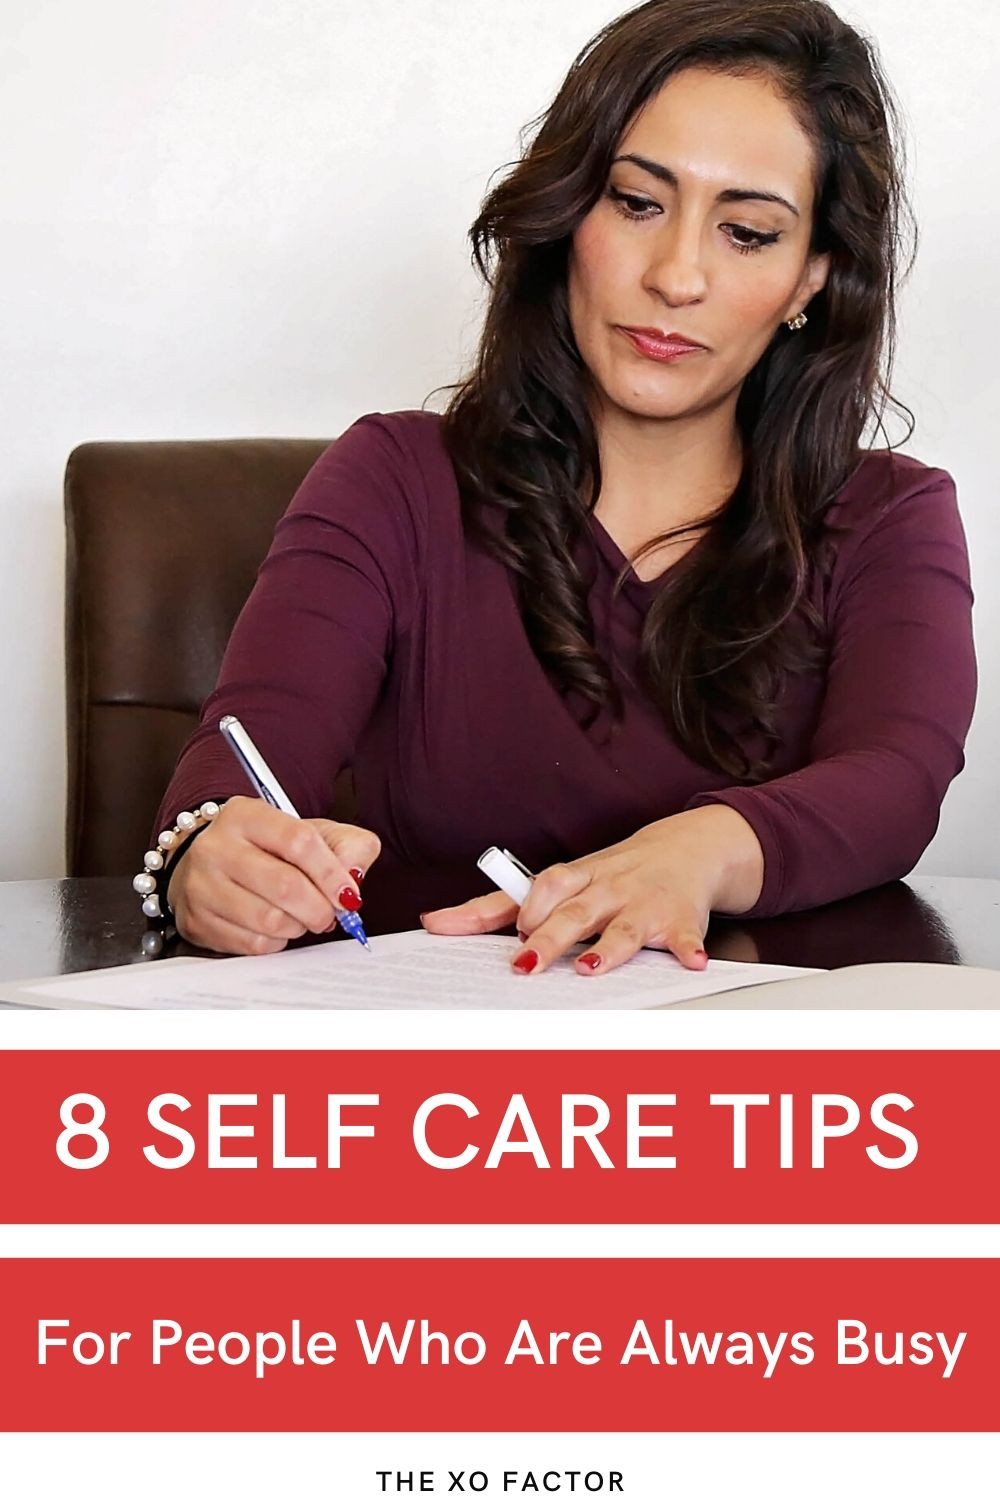 8 self care tips for busy people